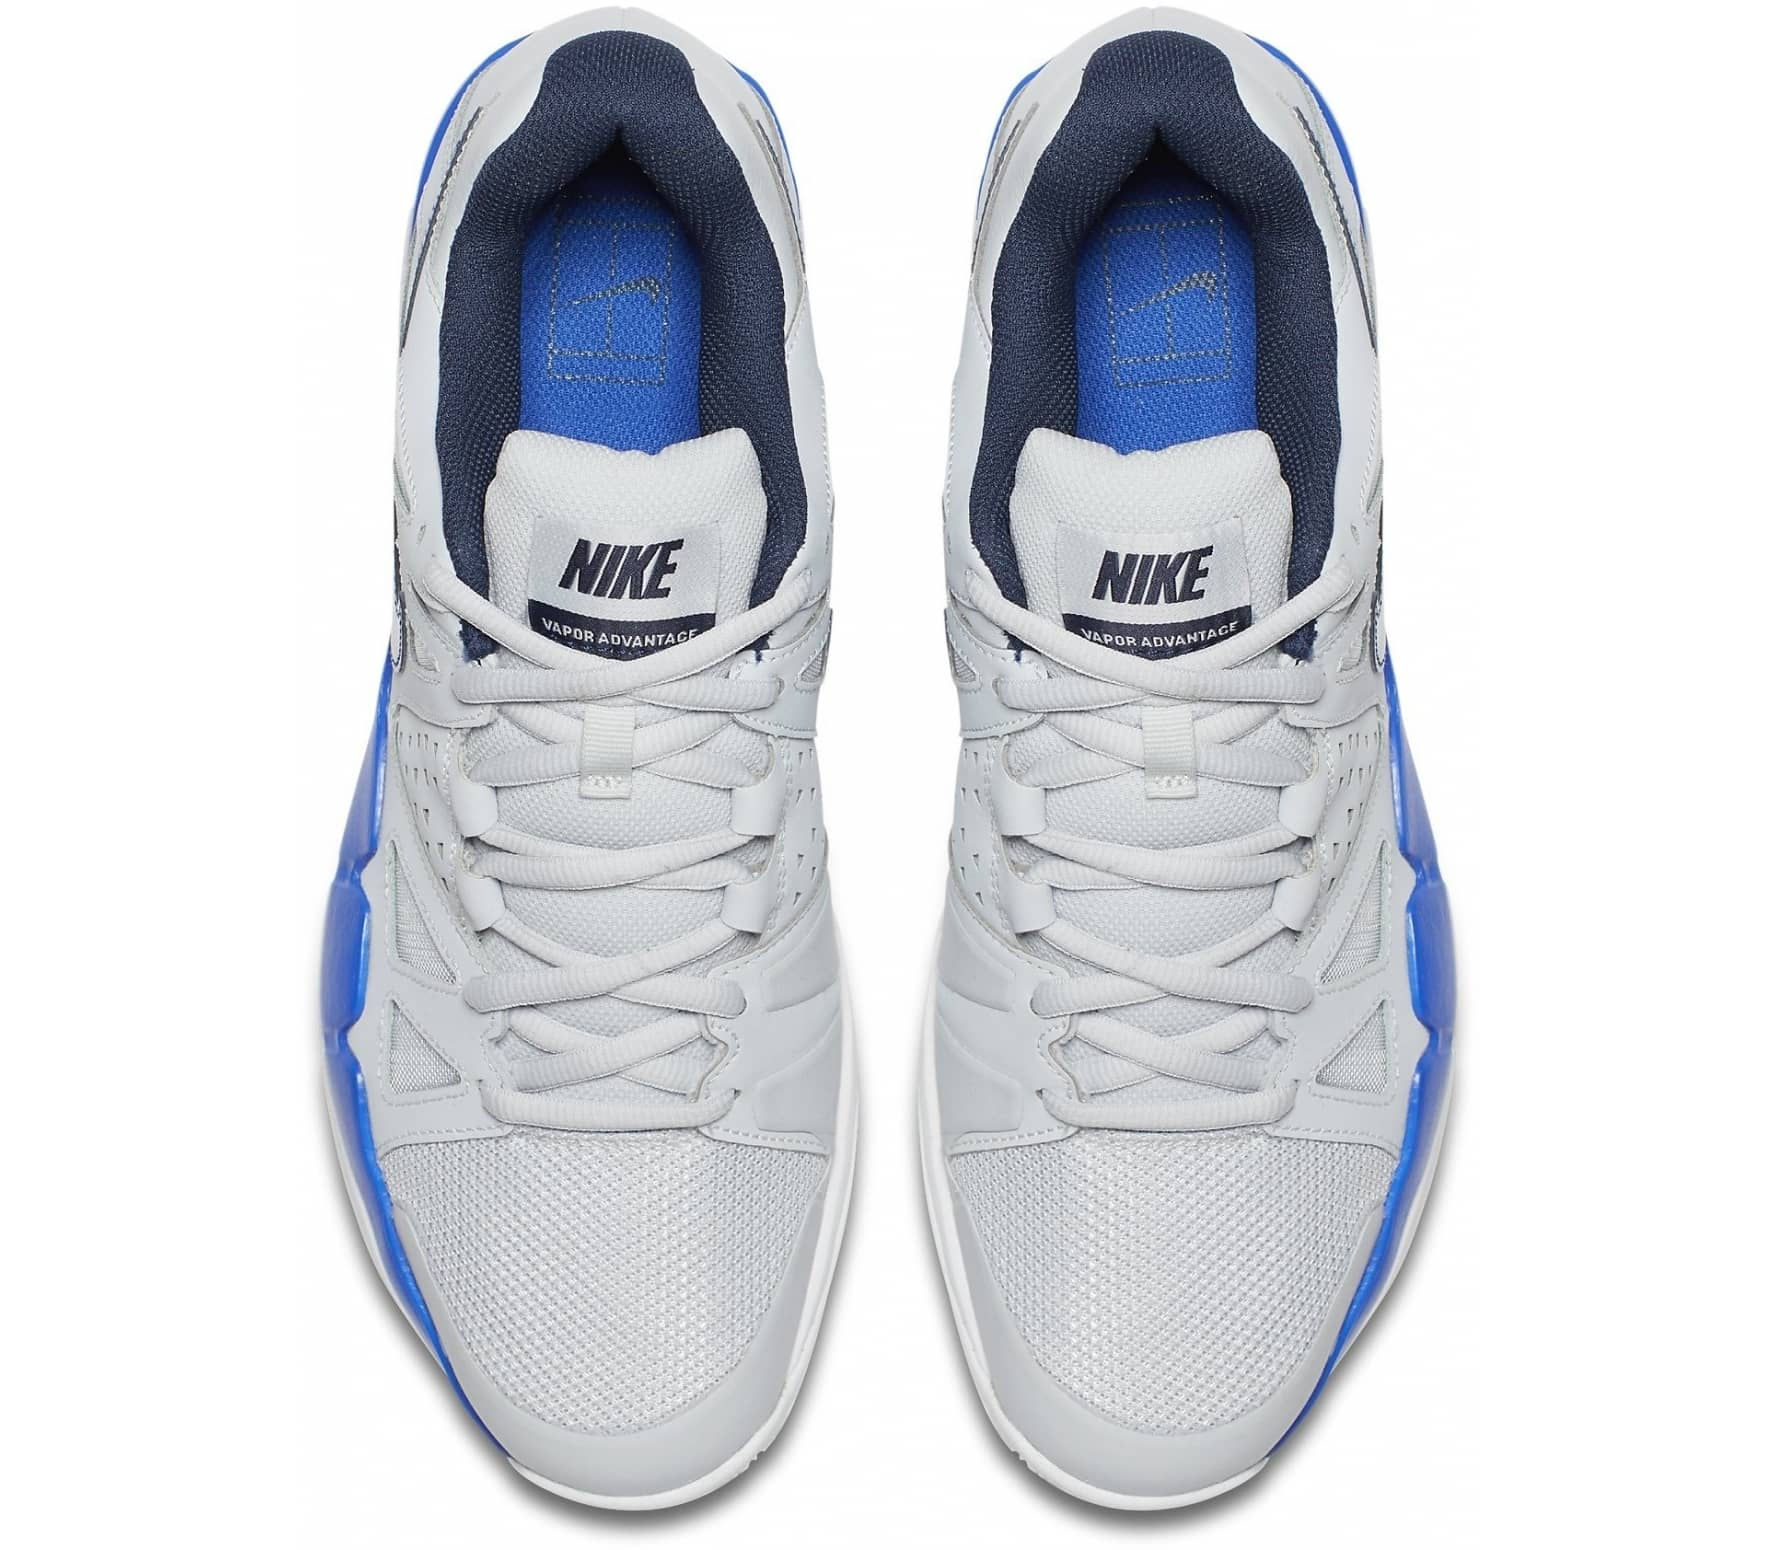 Nike Air Vapor Advantage Uomo Scarpa Da Tennis Men Buy